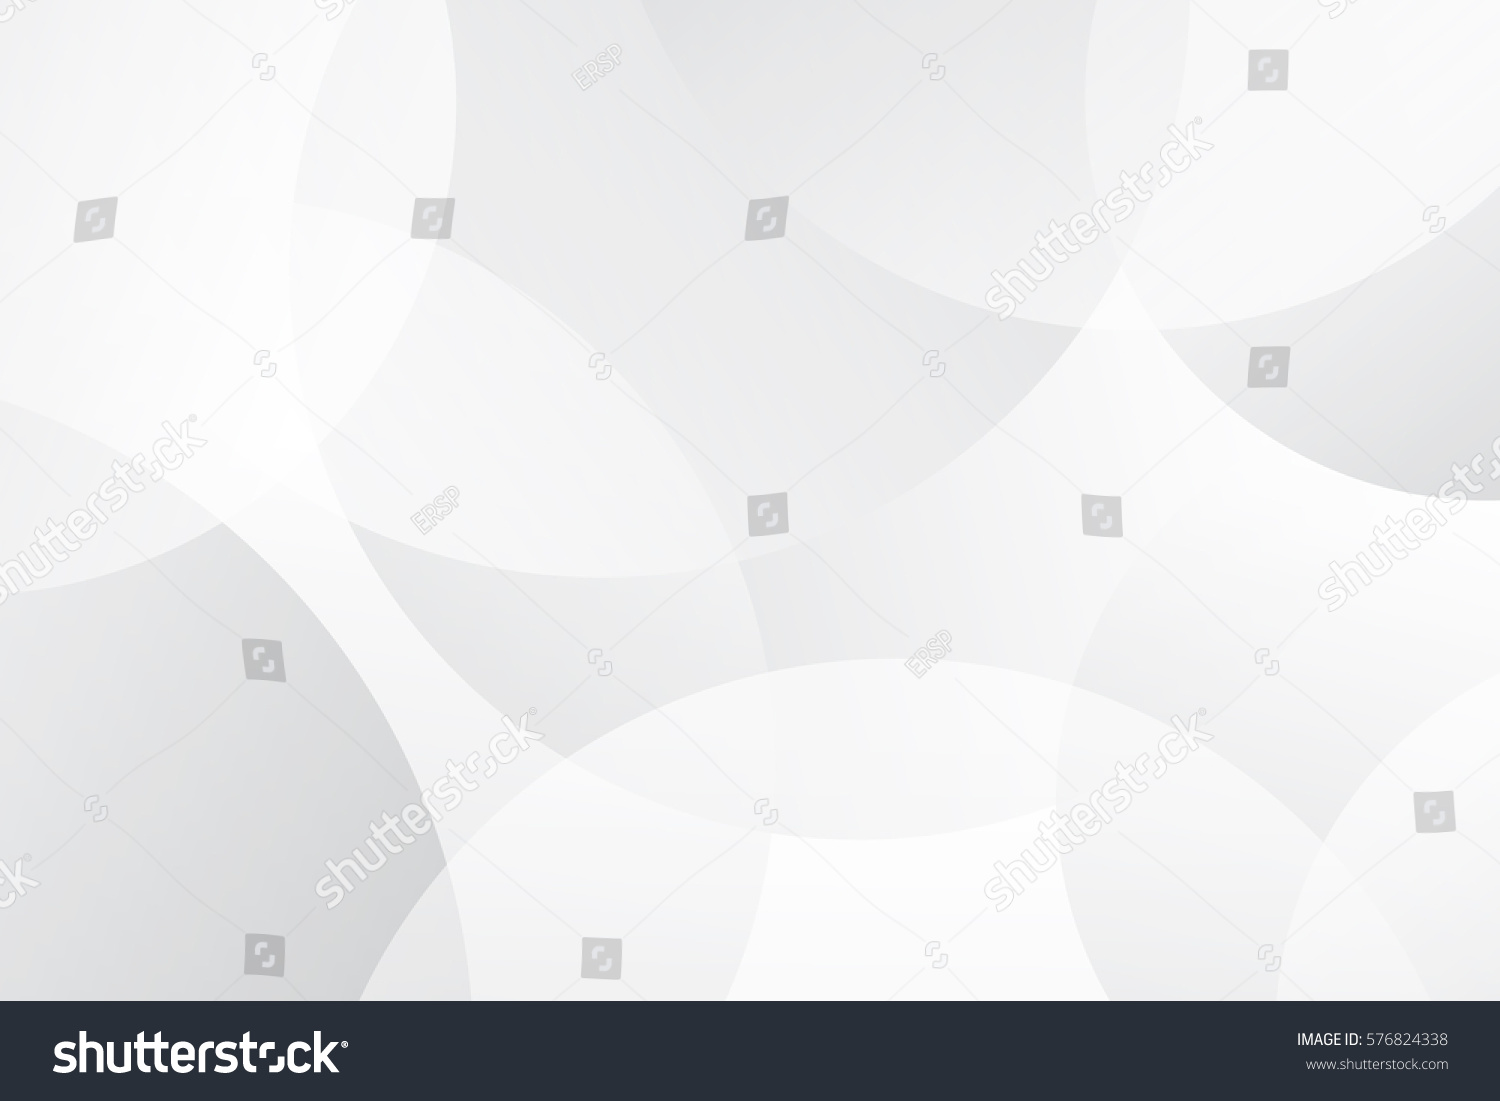 Background image transparency - White And Grey Abstract Modern Transparency Circle Presentation Background